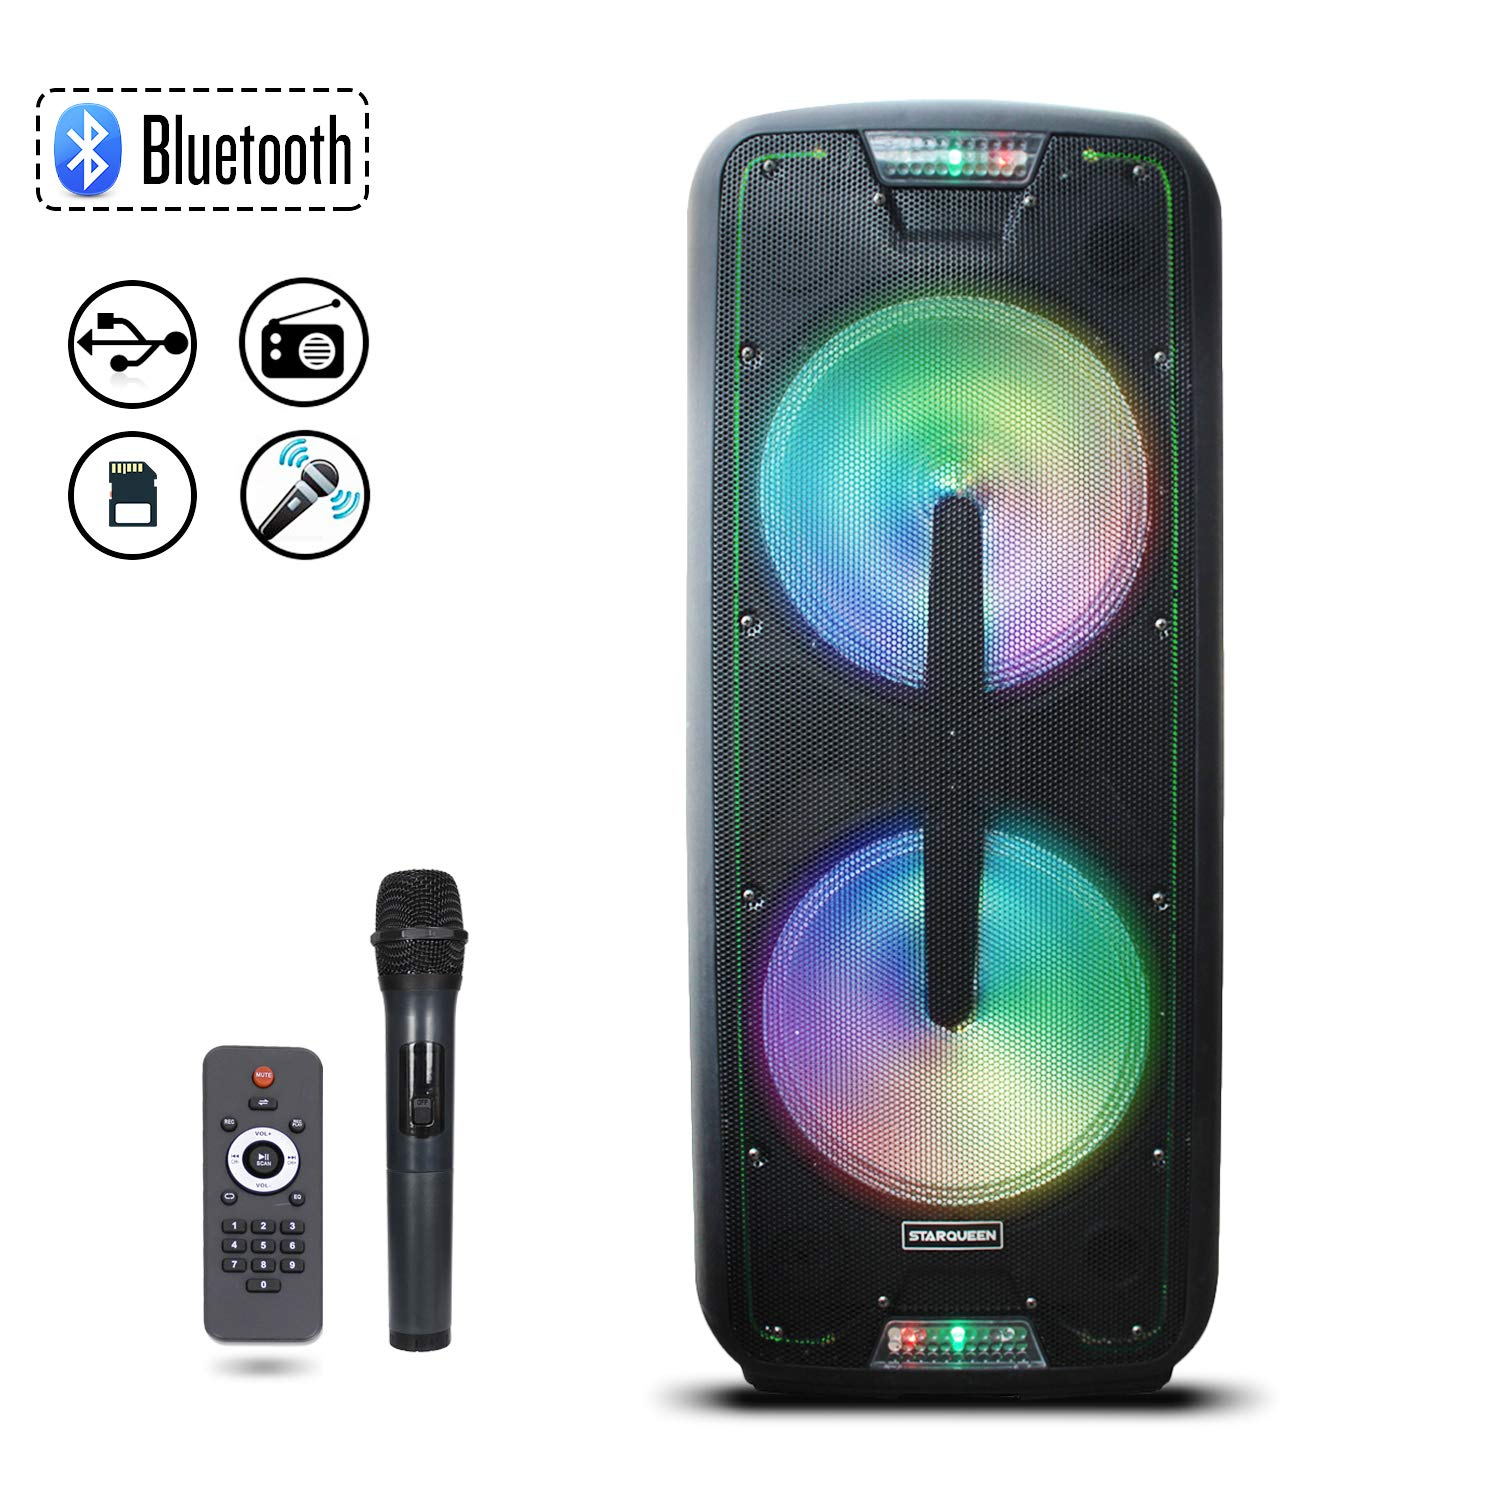 Starqueen Bluetooth PA Speaker Dual 12'' Woofers with Wireless UHF Microphones, Battery Powered Rechargeable Karaoke DJ Speaker with LED Lights, Active Loud Digital Sound Box, FM/MP3/USB/SD/TF/AUX